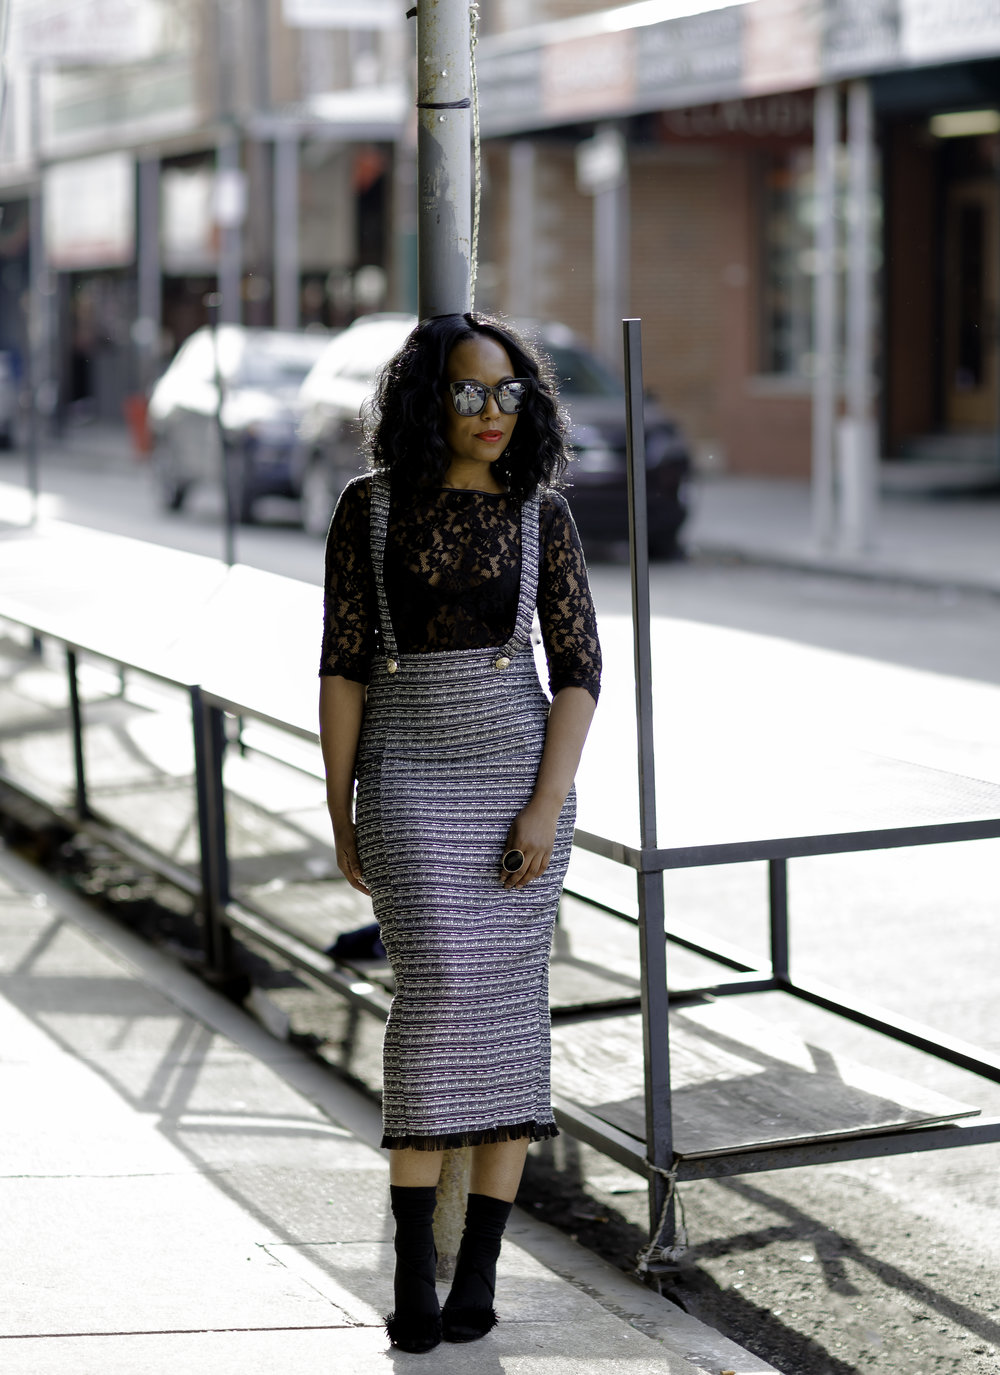 Midi Skirt (Eve Lawrence Boutique ) | Top(Forever21) old | Sandals(Steve Madden) old